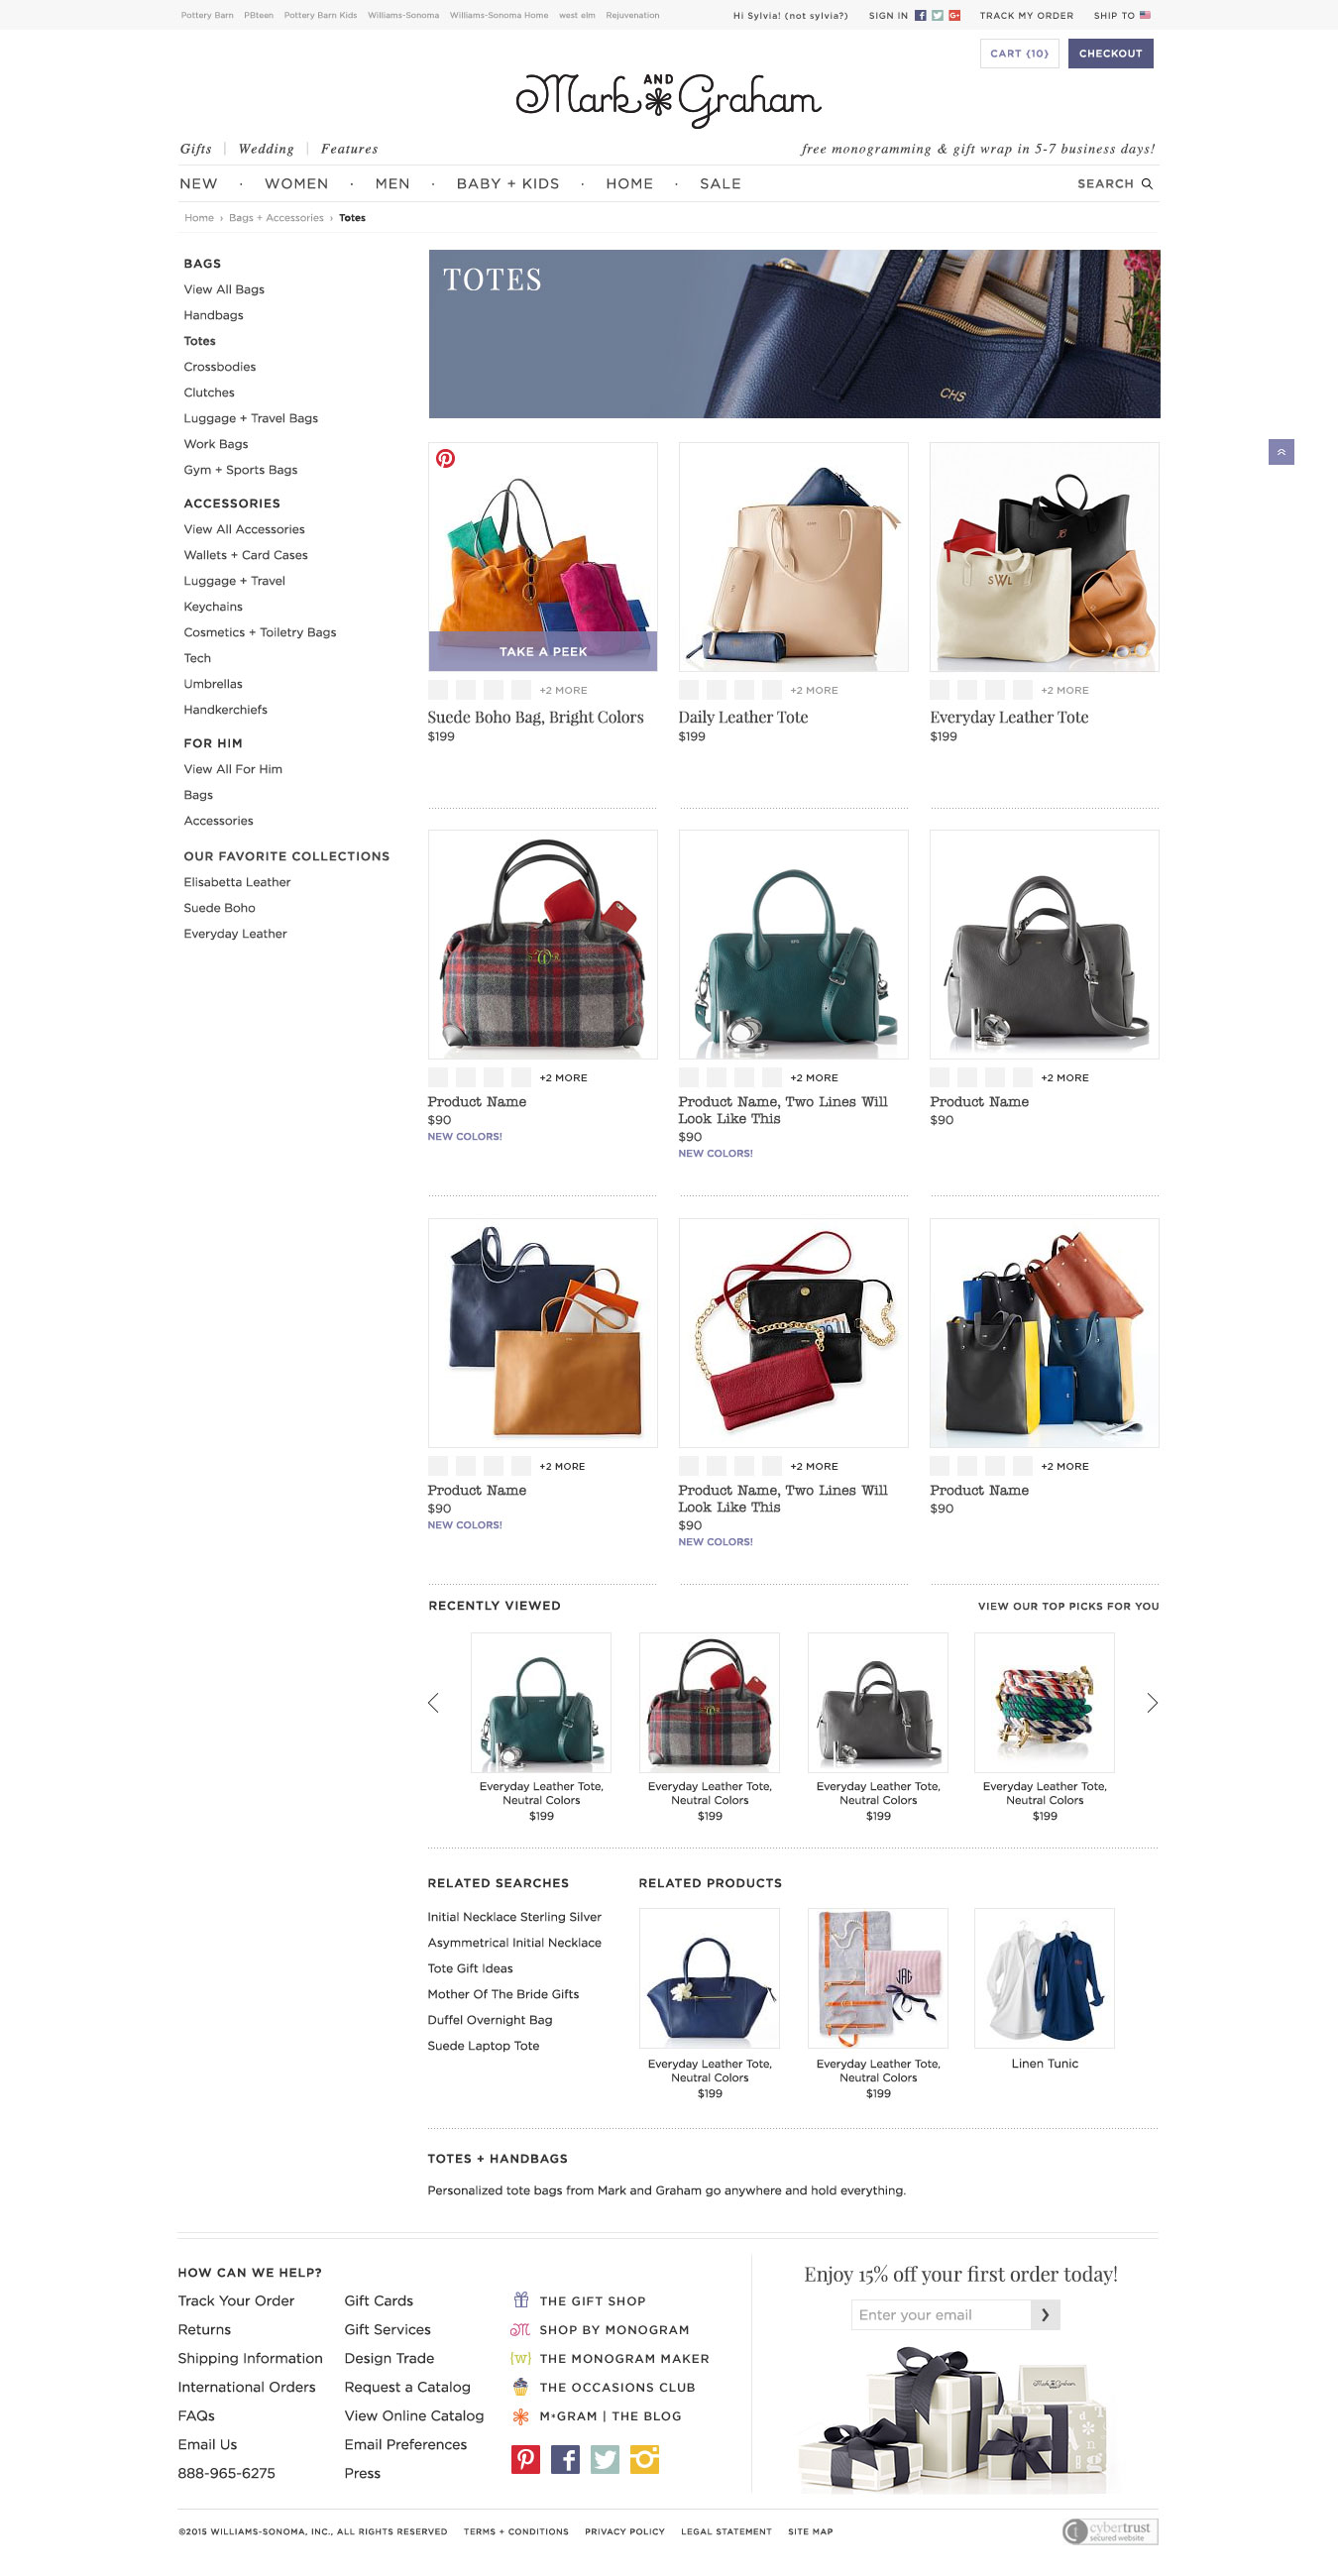 ecommerce-web-design-product-list.jpg